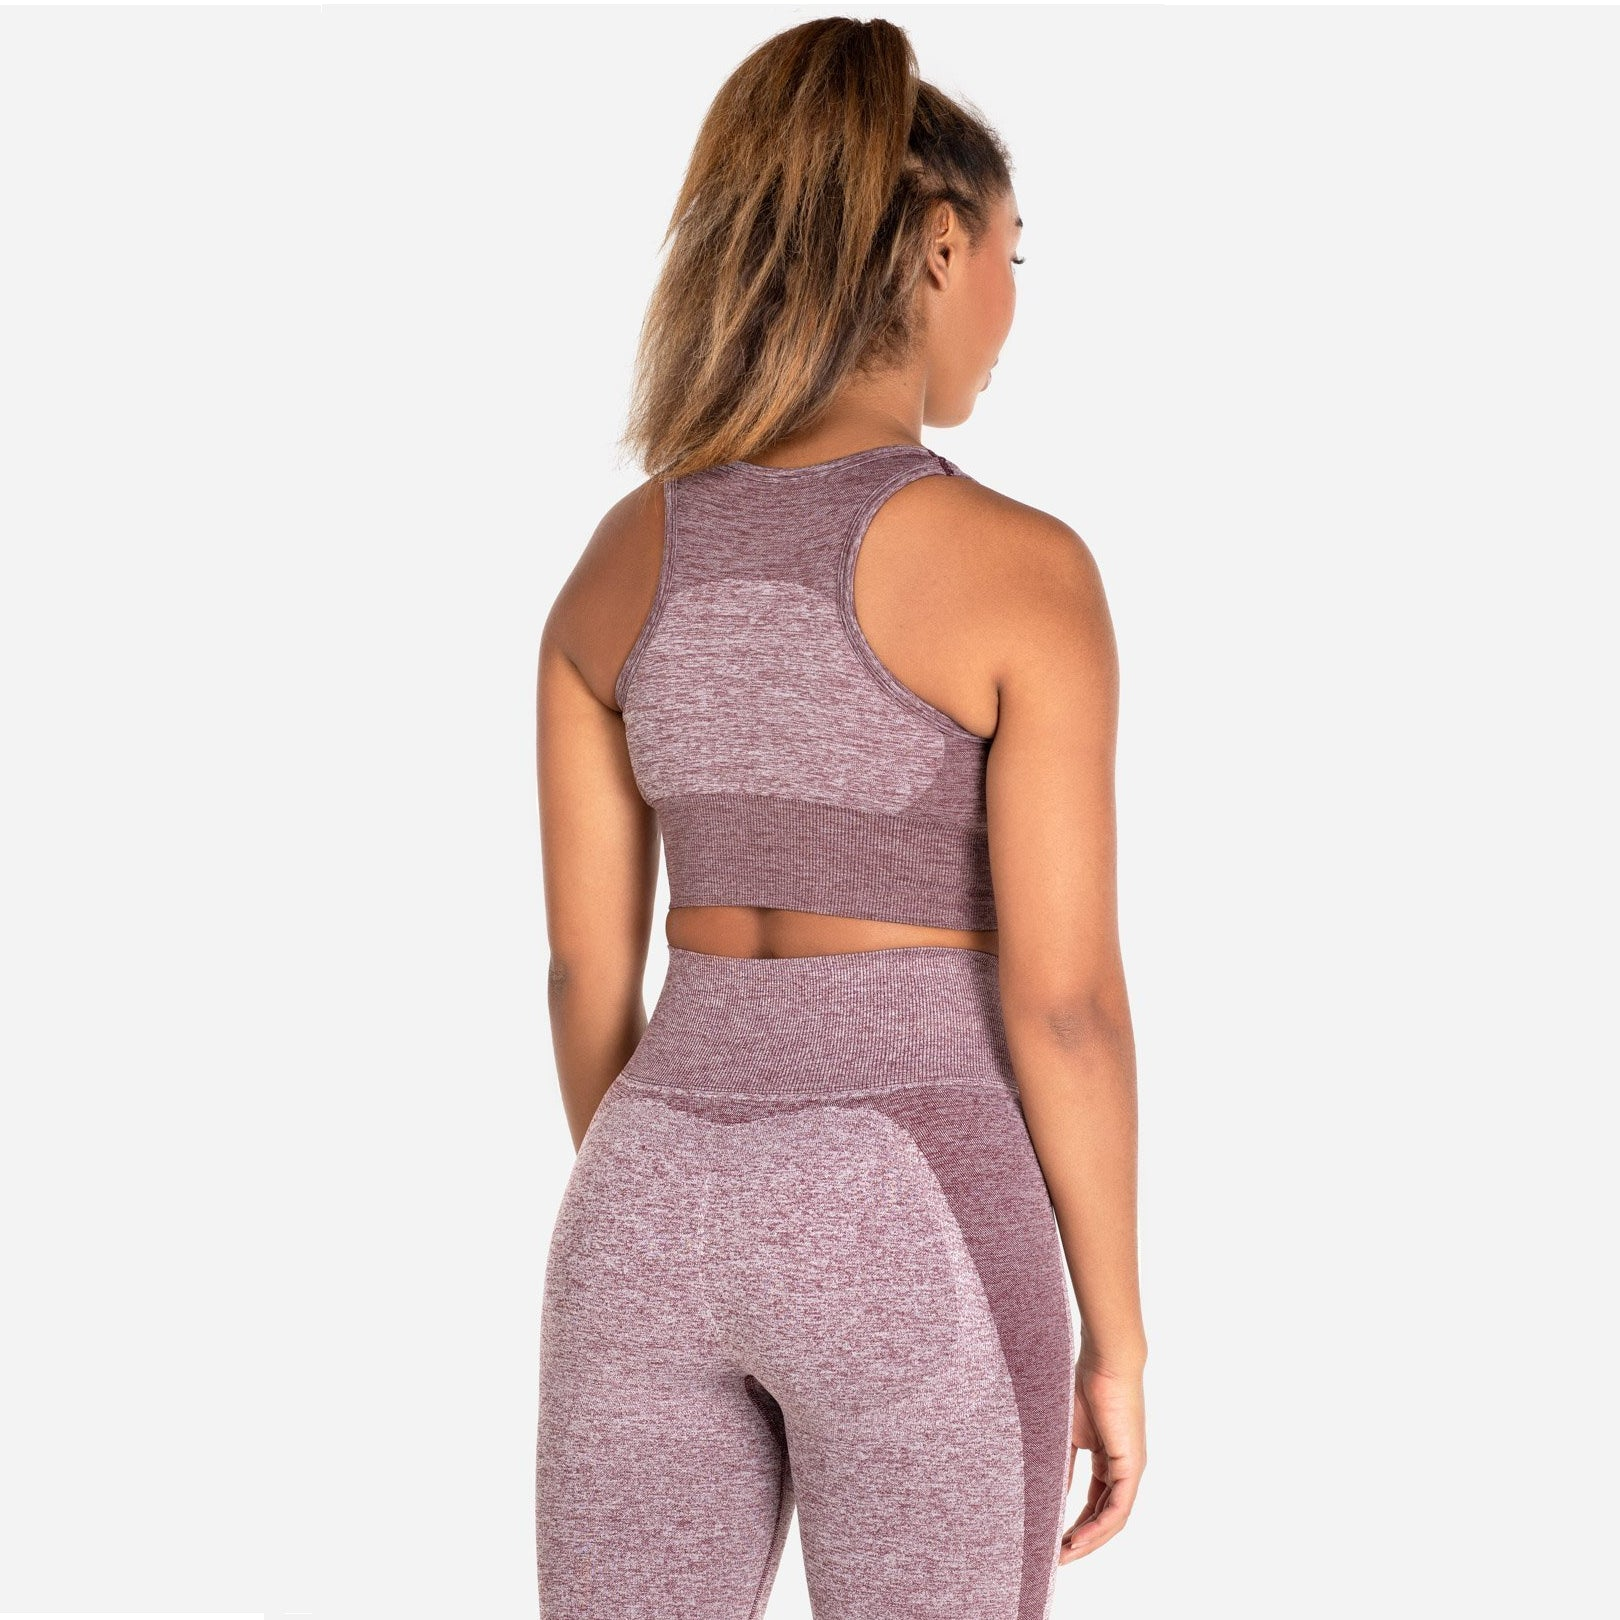 ICANIWILL - FLOW TIGHTS SORT